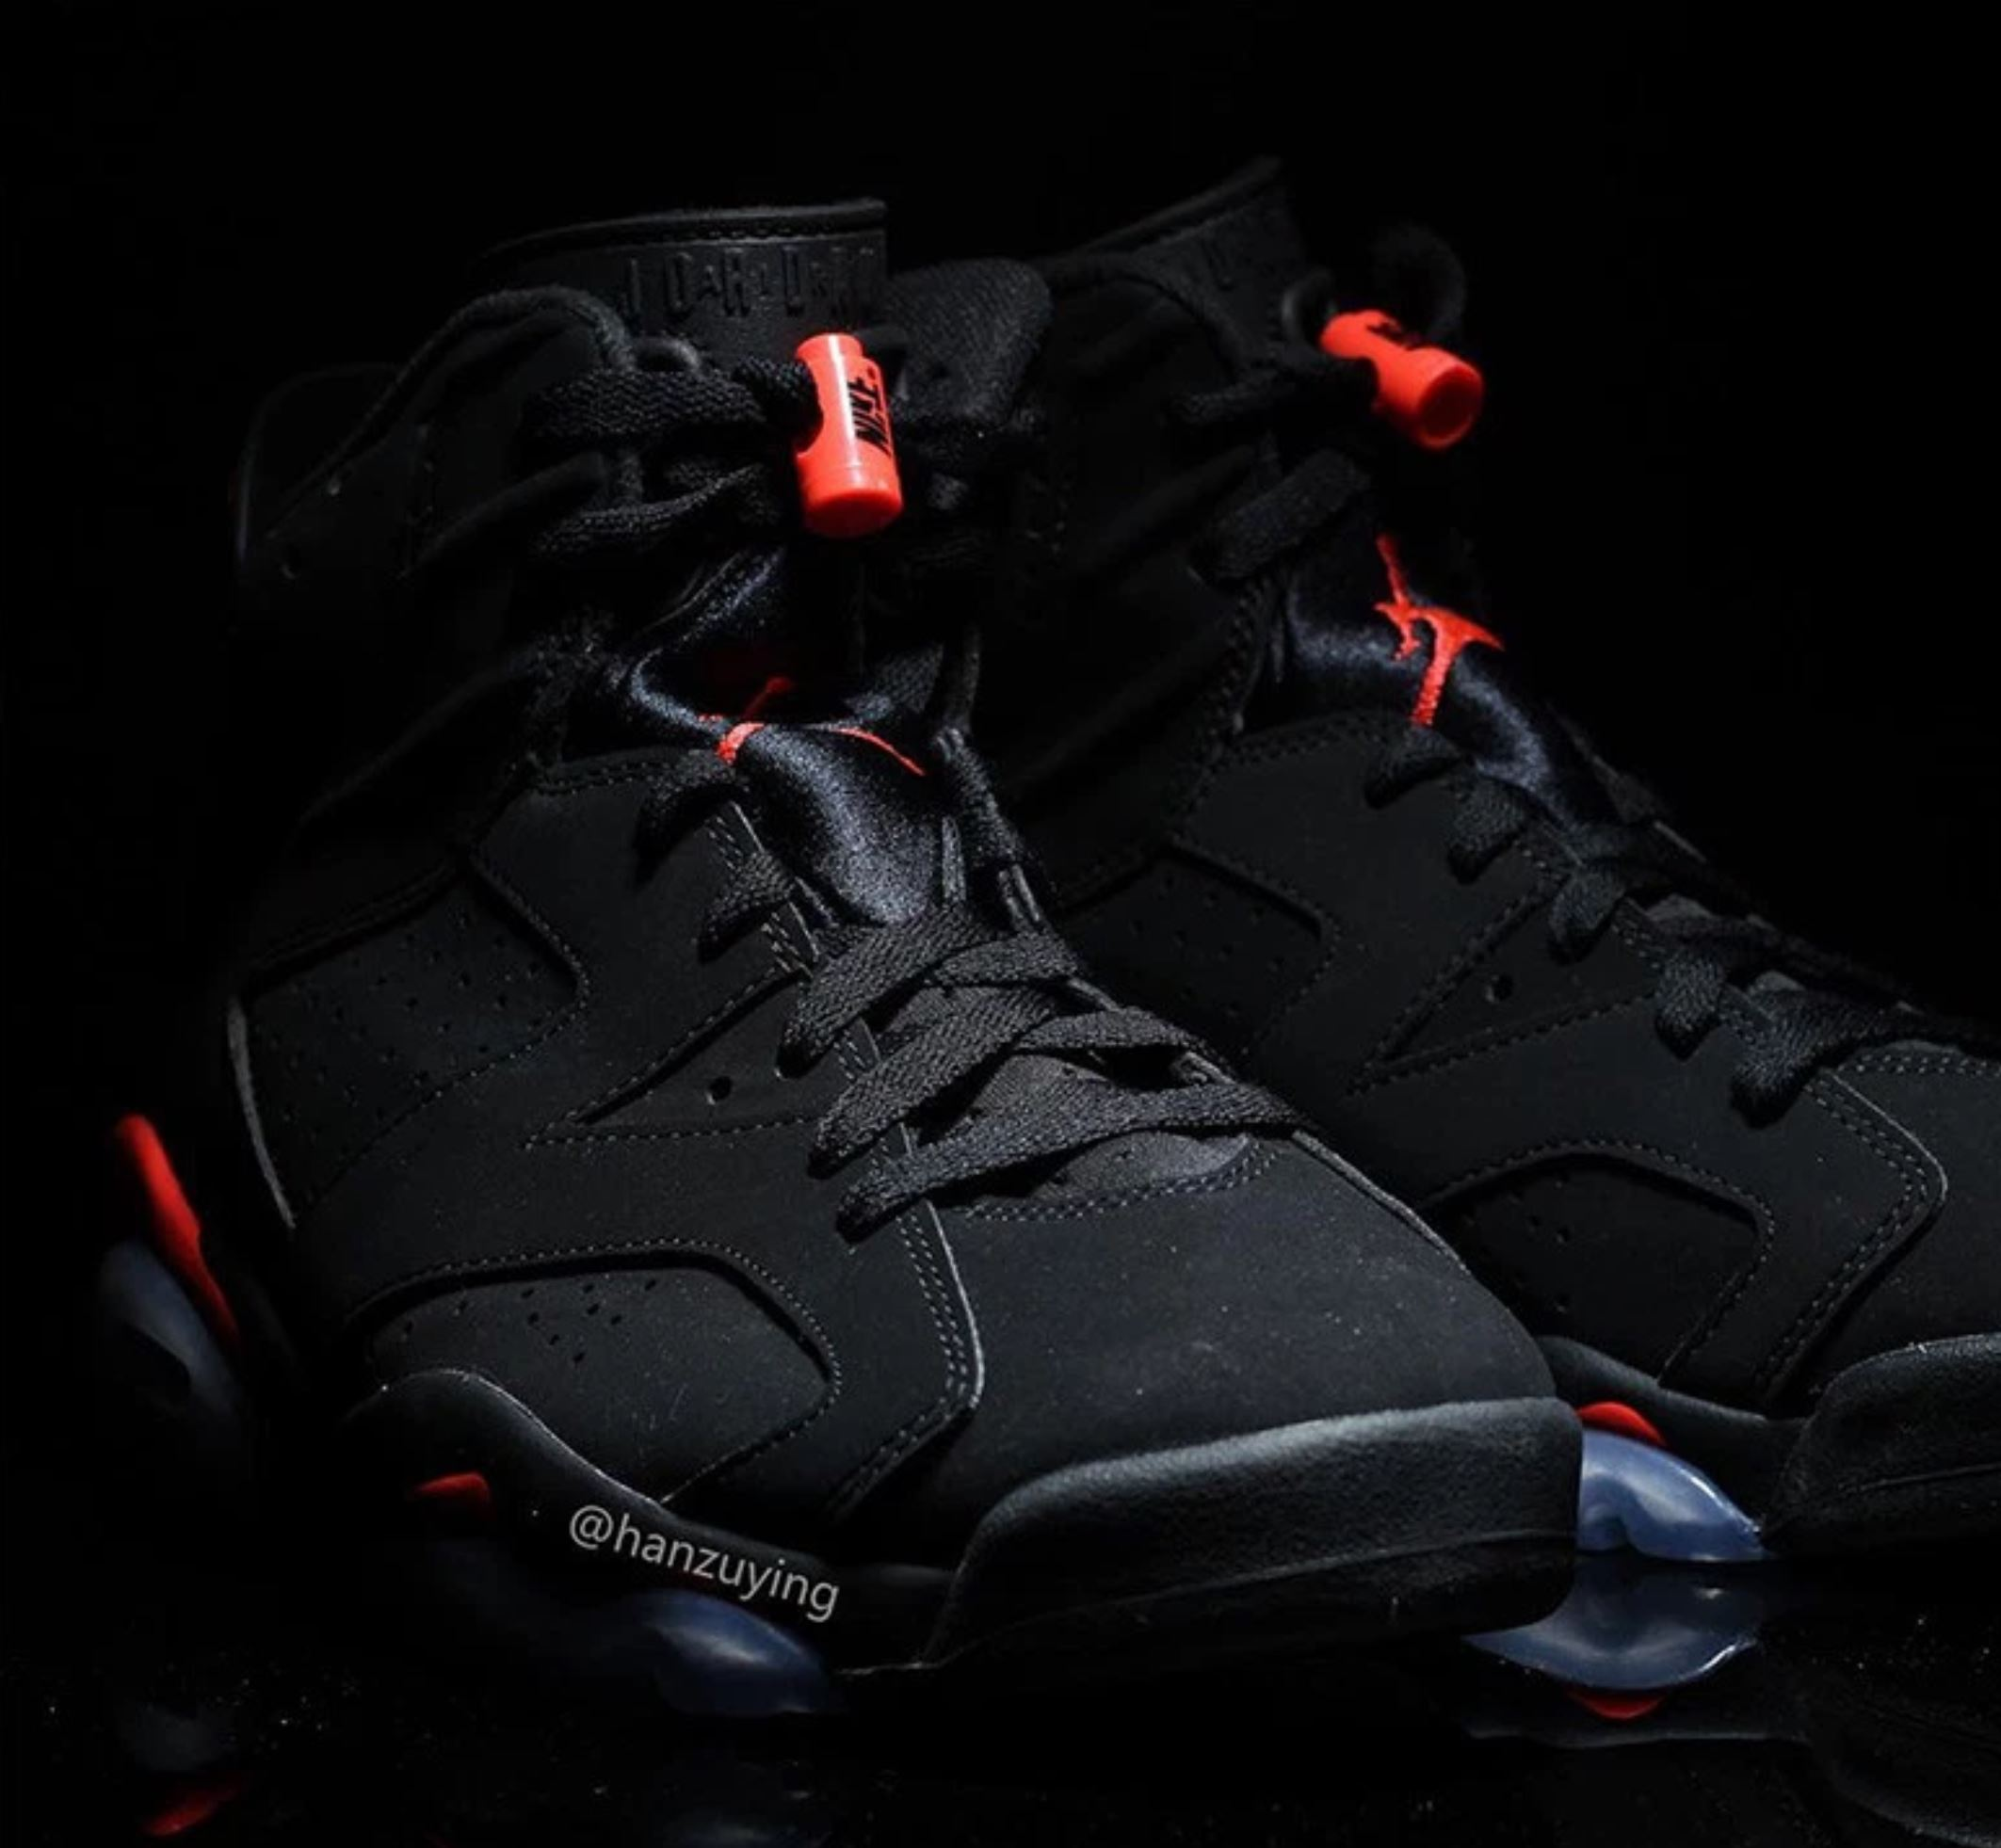 separation shoes 48f4f 8fede The Air Jordan 6 'Black Infrared' to Release in February for ...